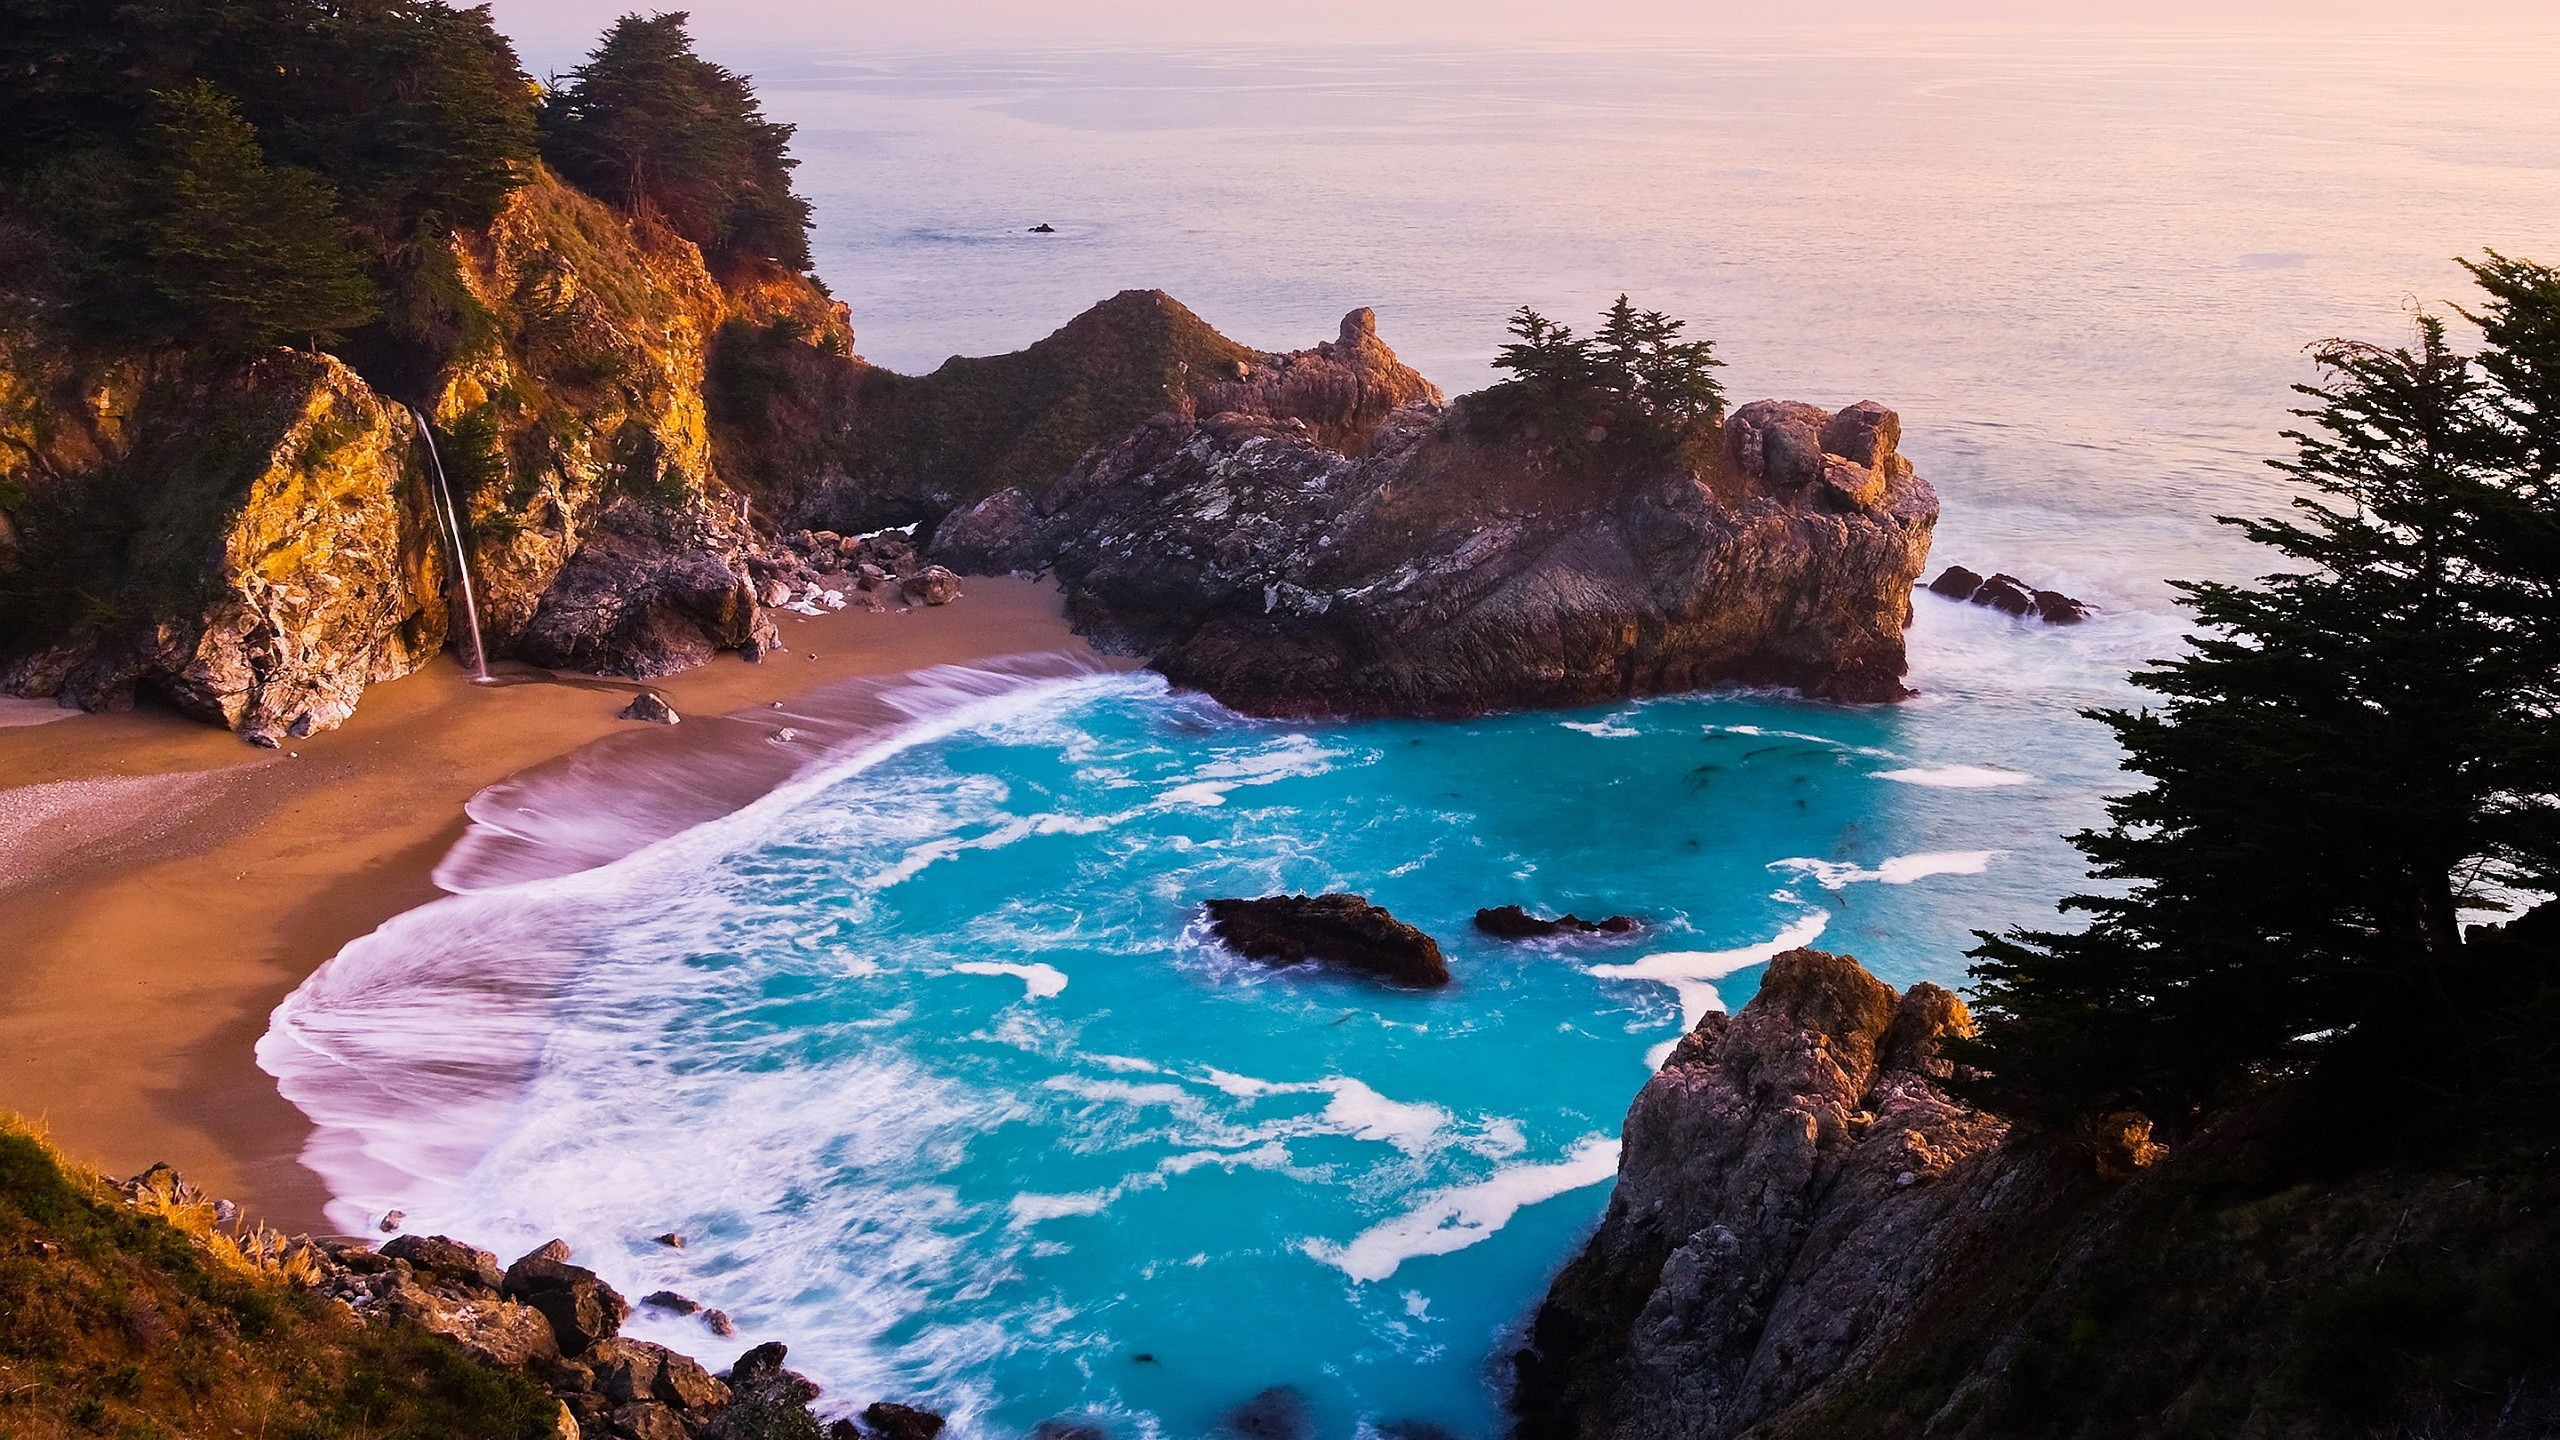 california beaches wallpaper (57+ images)